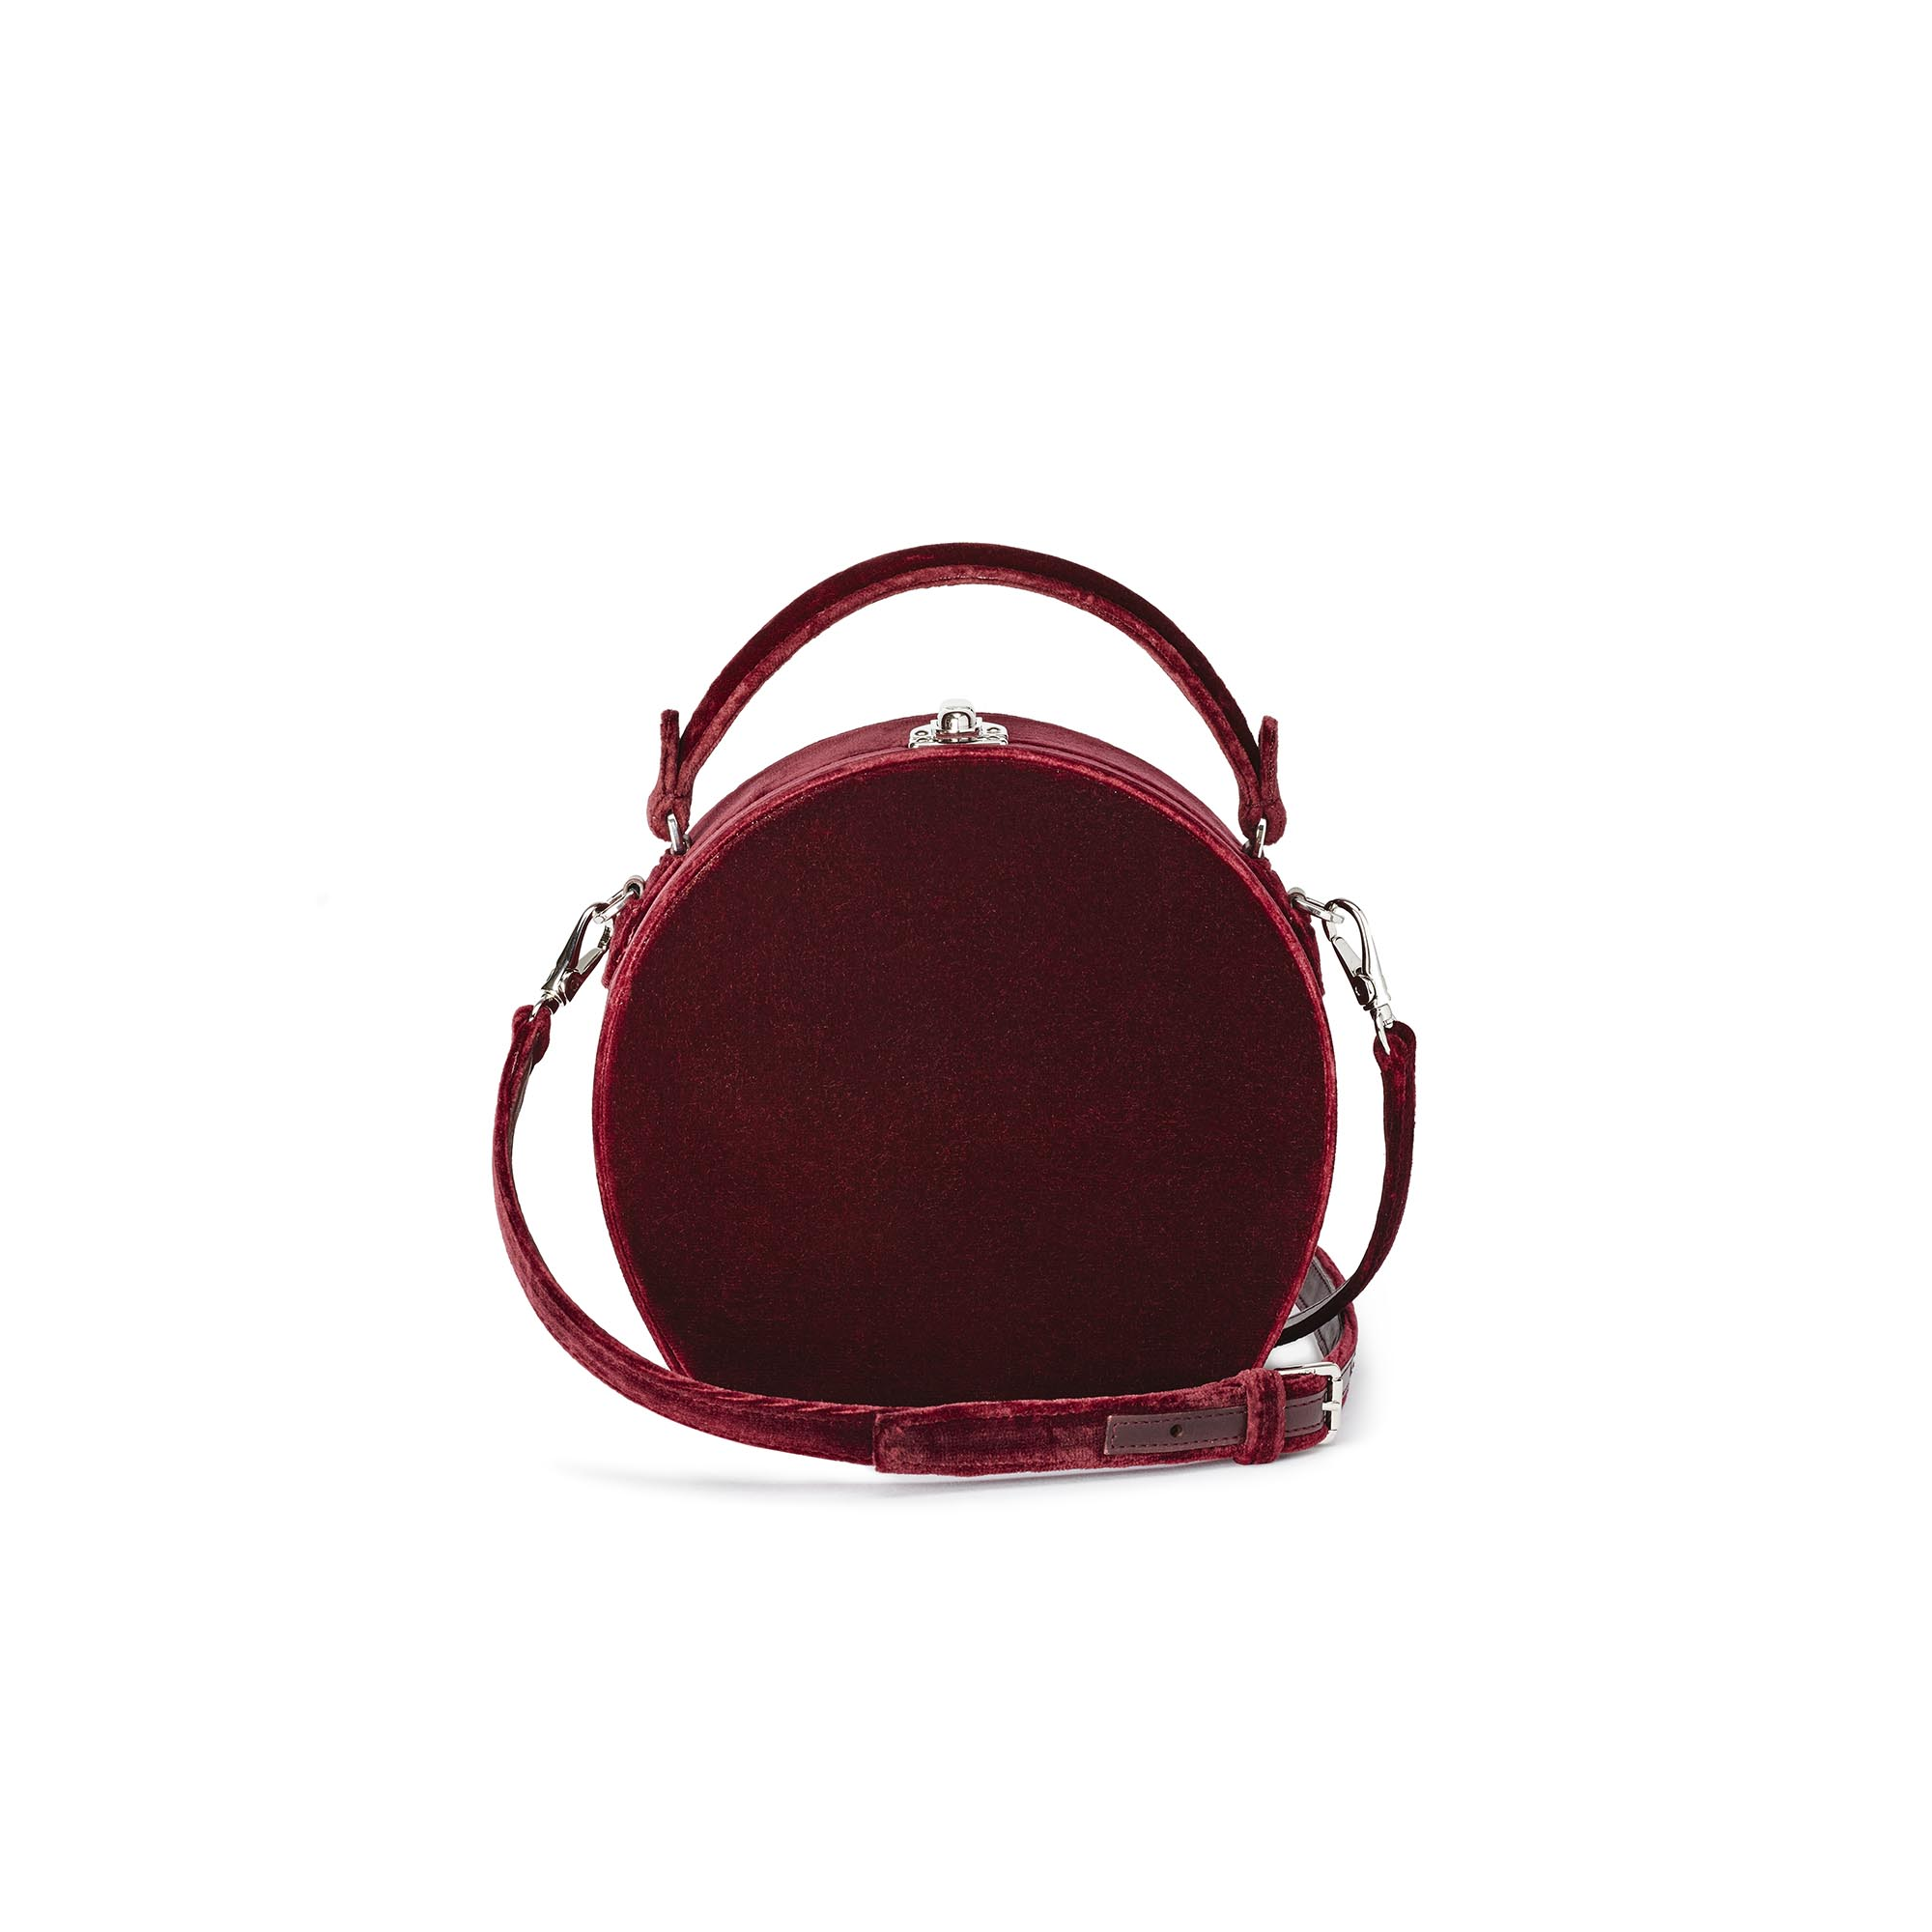 Regular-Bertoncina-bordeaux-velvet-bag-Bertoni-1949_01